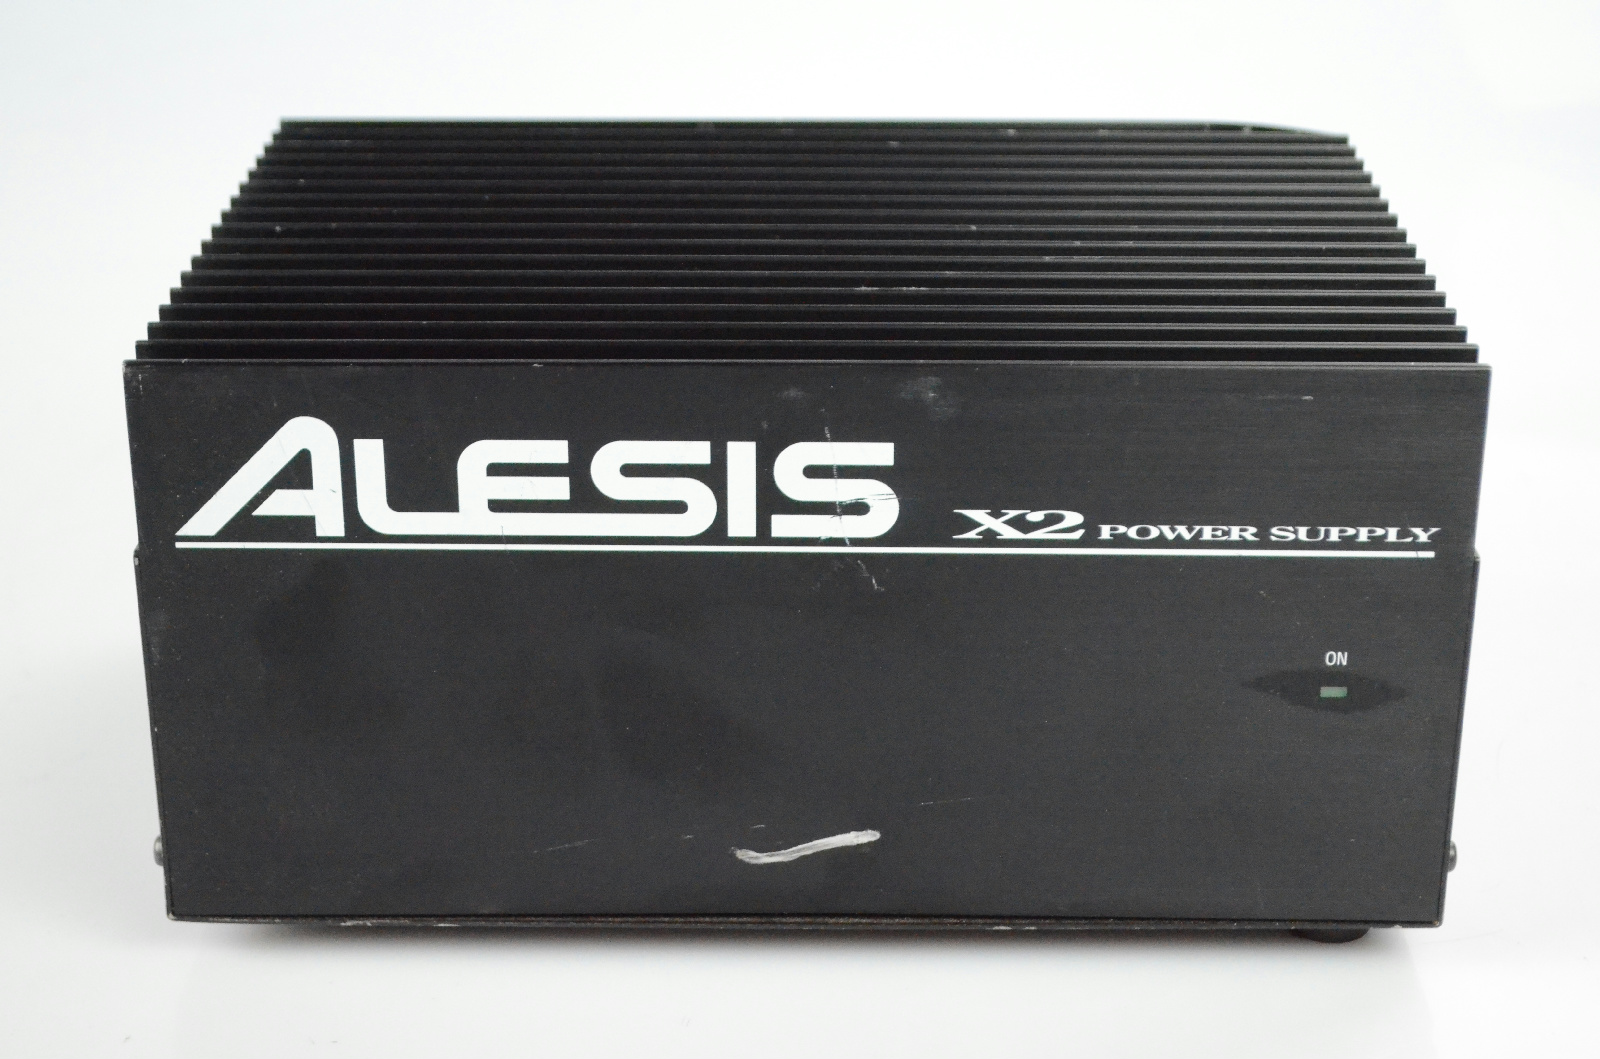 Alesis X2 Power Supply PSU for Console Mixer Mixing Board #33865